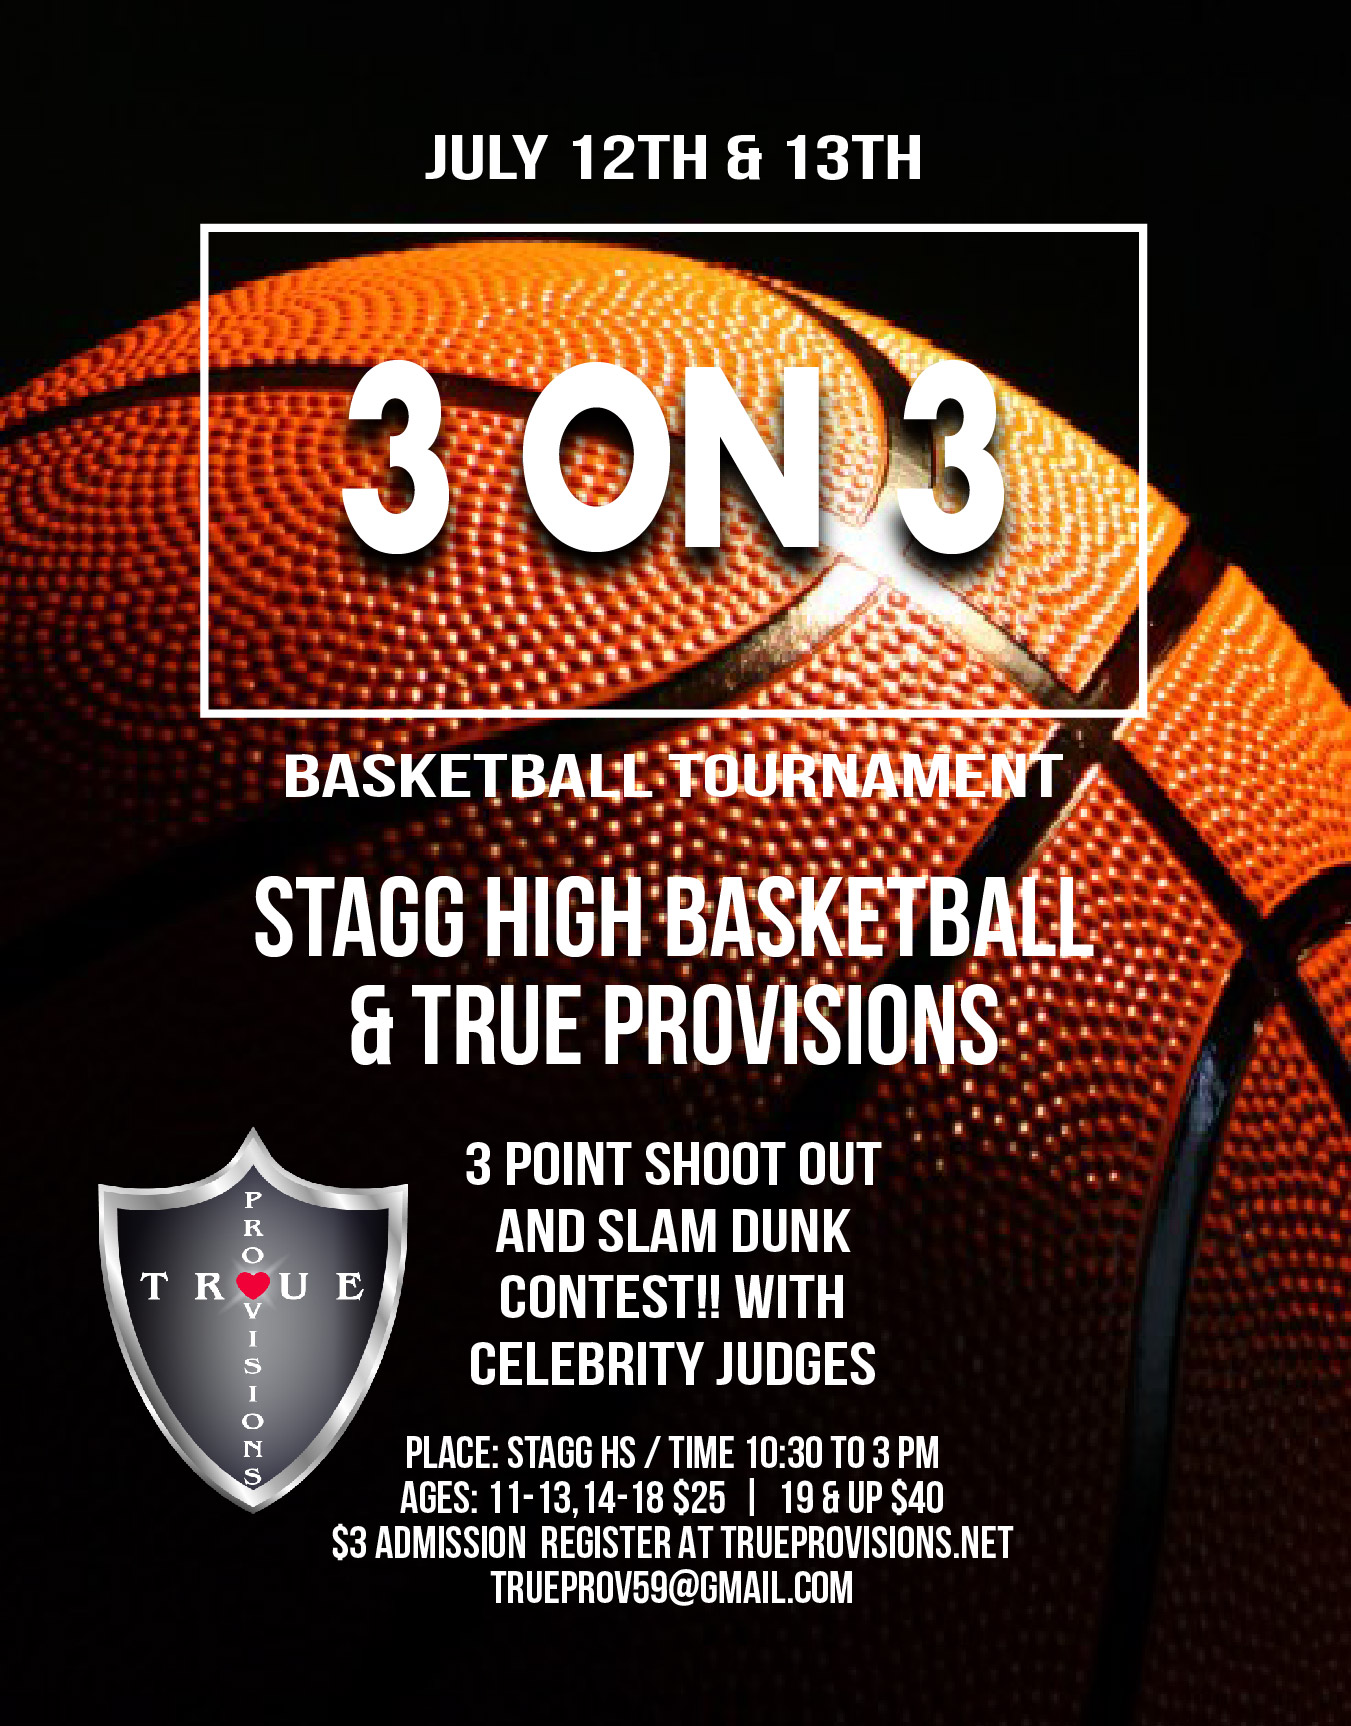 3 on 3 Basketball Tournament 10:30 am to 3pm